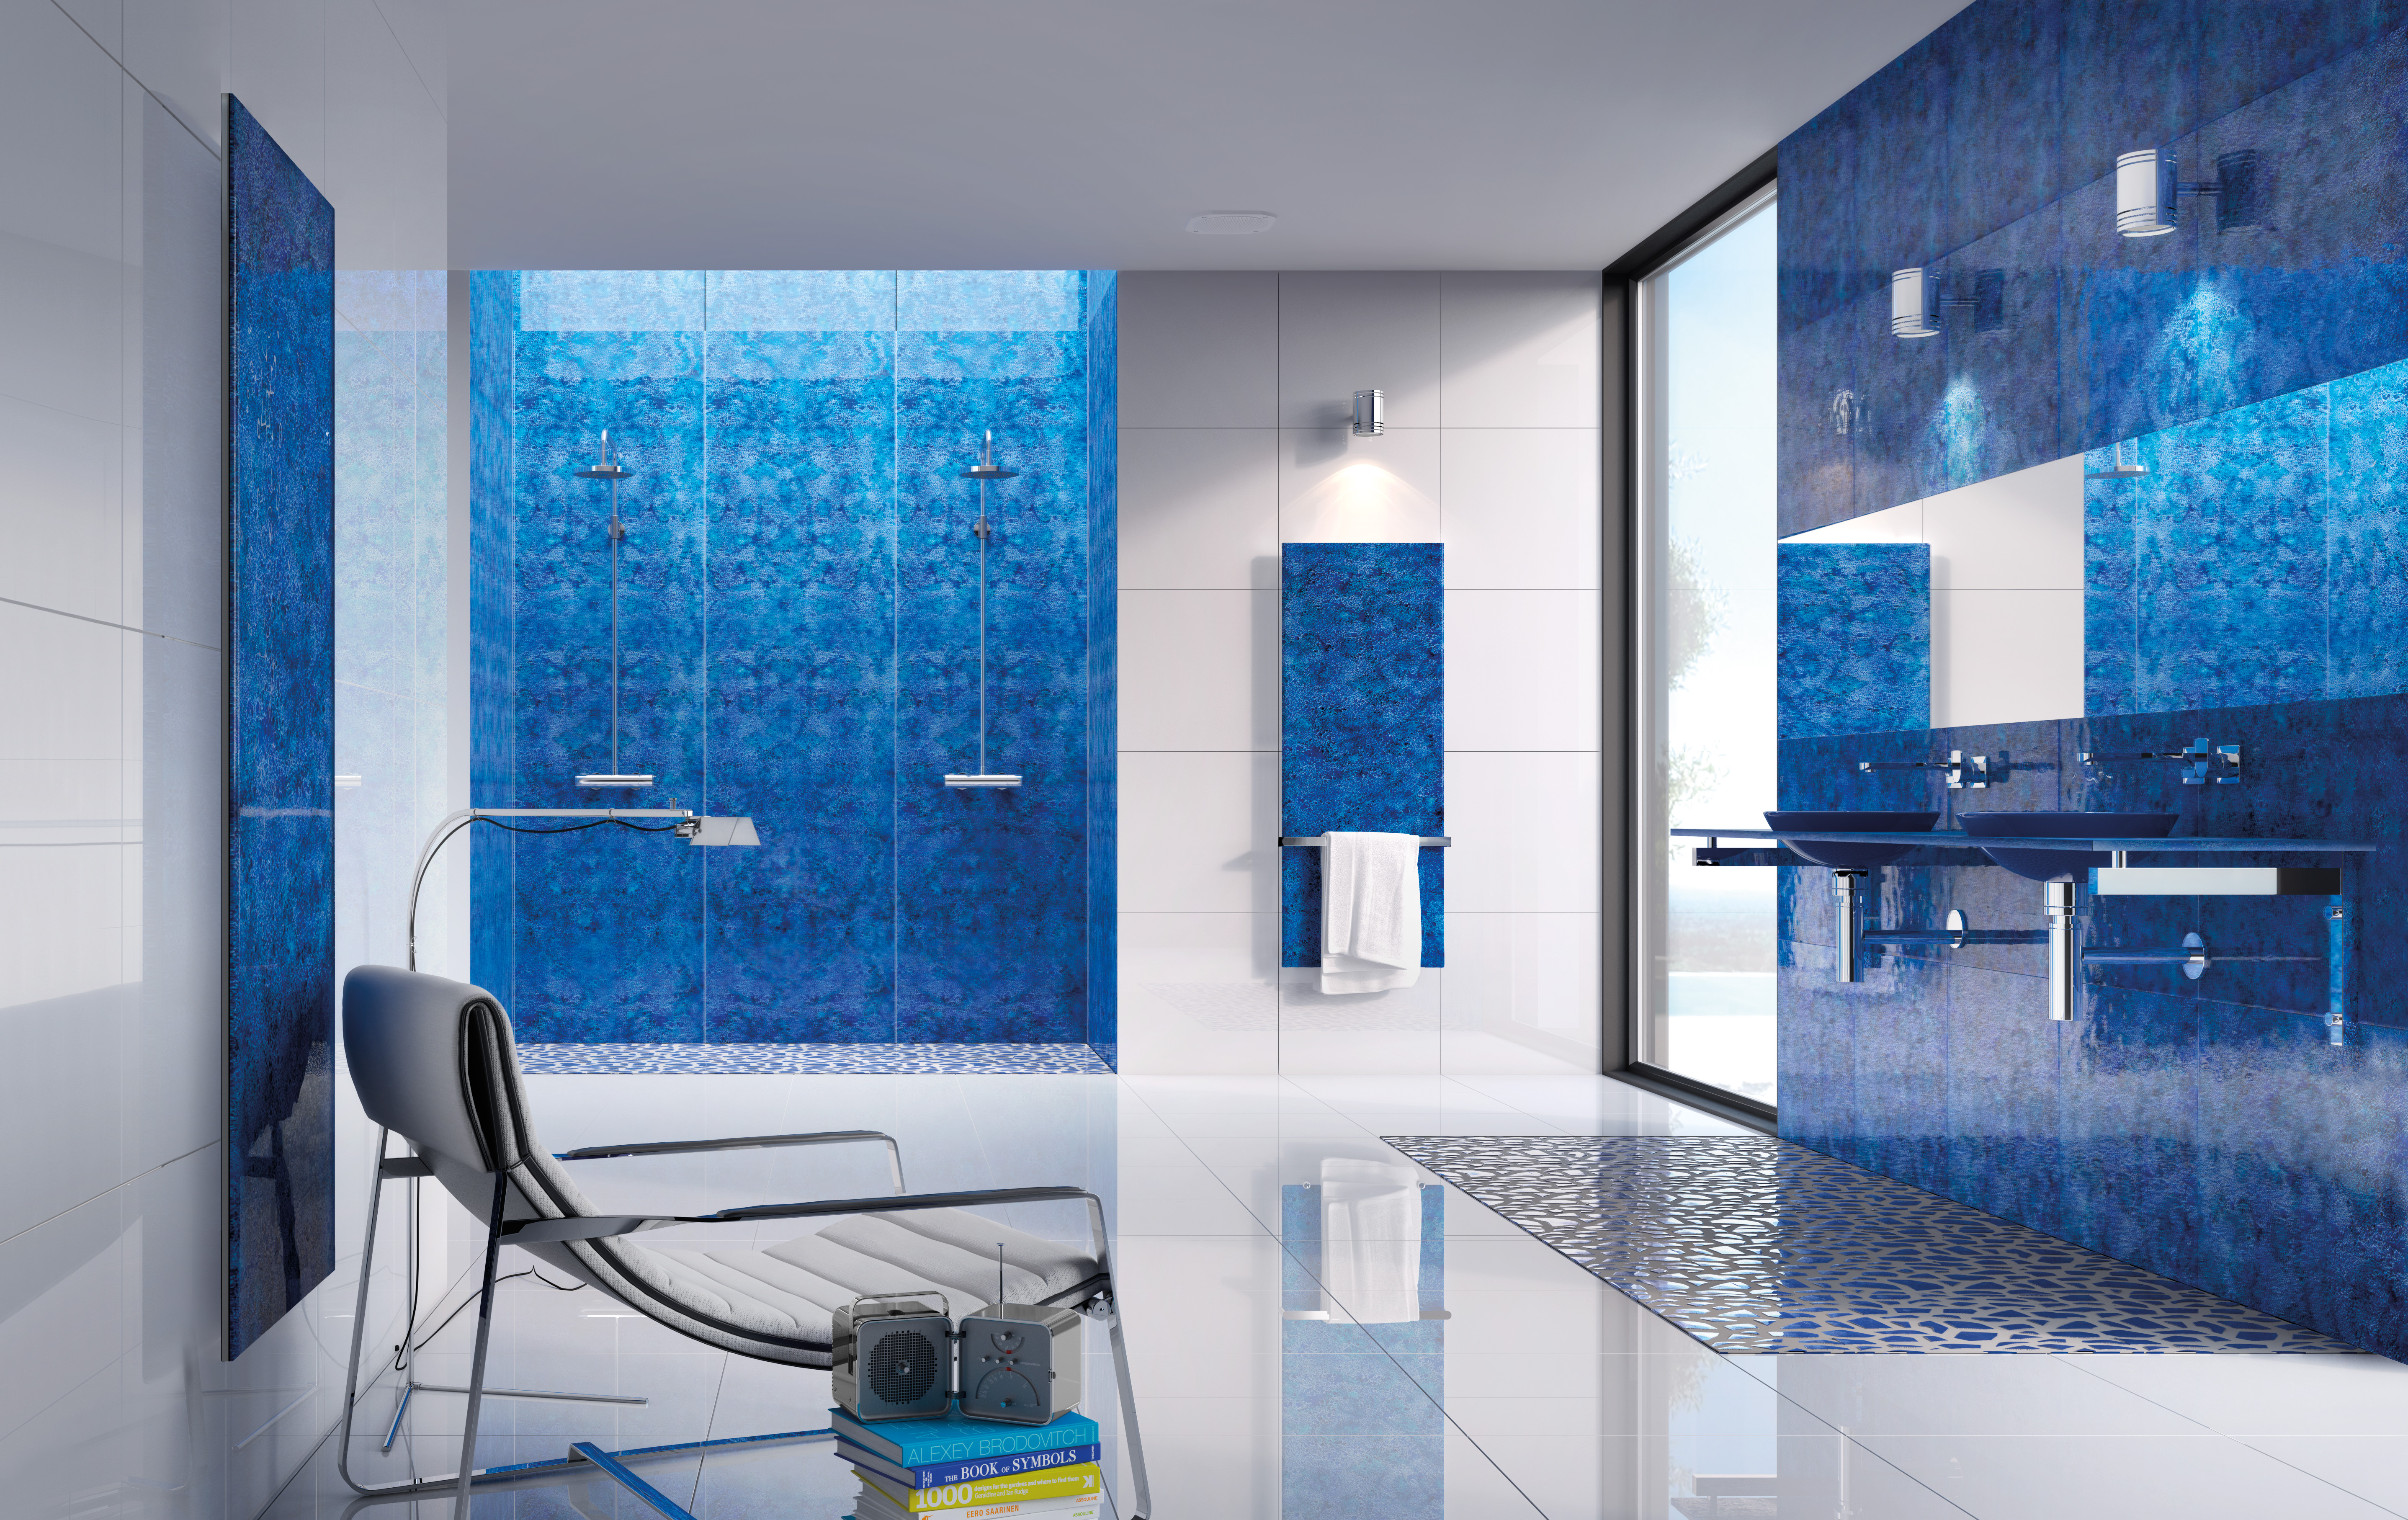 7 Bathroom Interiors Trends For 2018 And Beyond Fresh Design Blog - Colored-and-clear-glass-tiles-by-vetrocolor